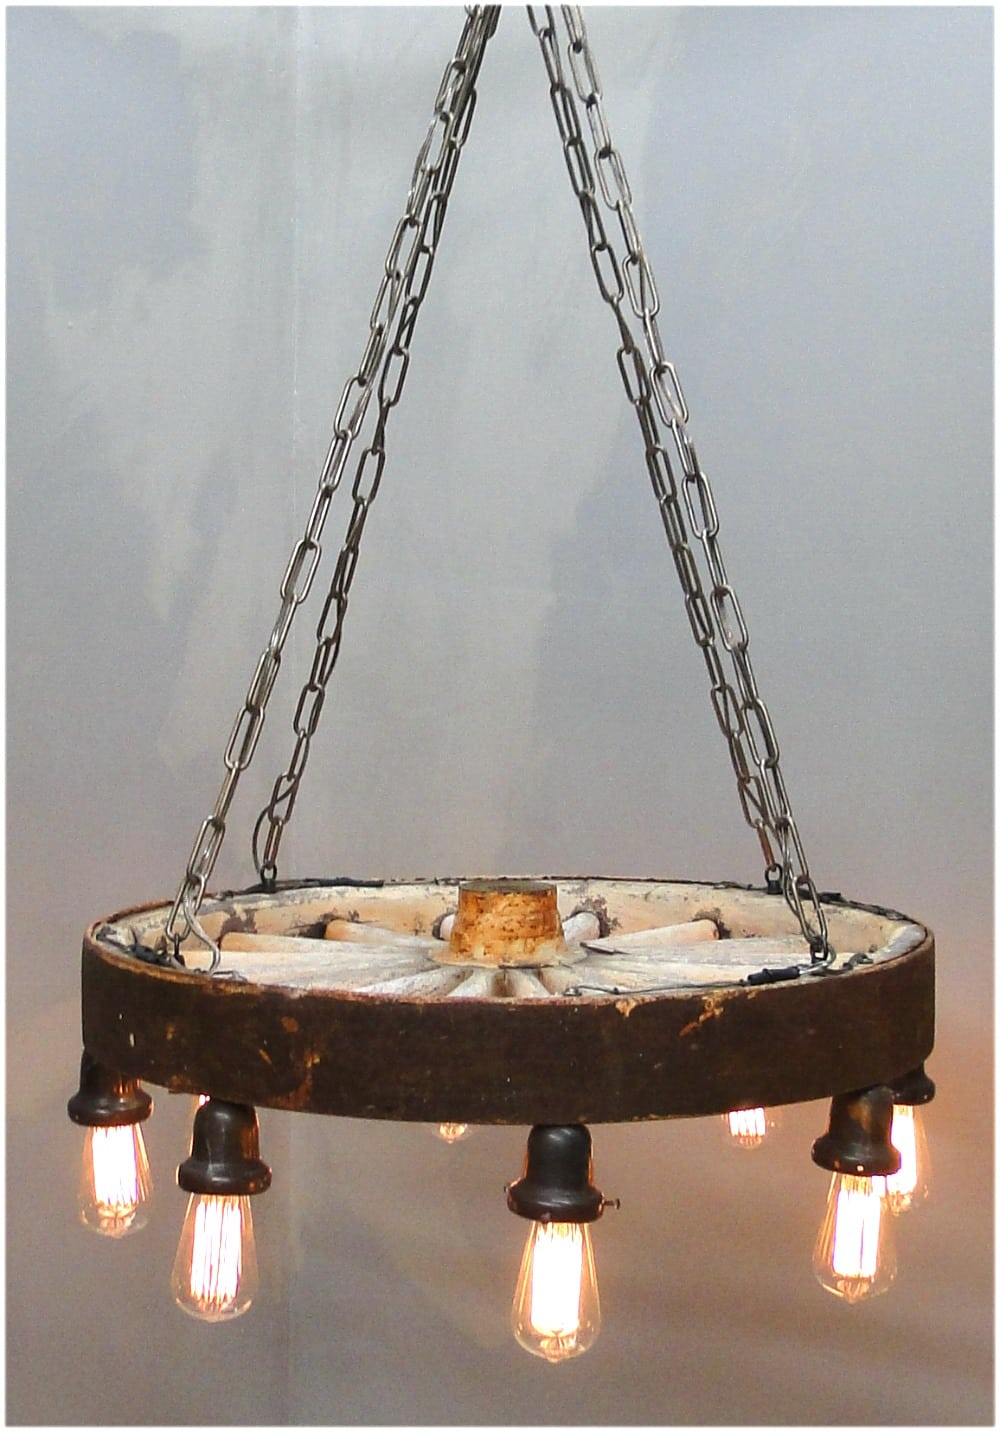 Big antique wooden wagon wheel chandelier wired ready to hang big antique wooden wagon wheel chandelier wired ready to hang ornginal arubaitofo Image collections